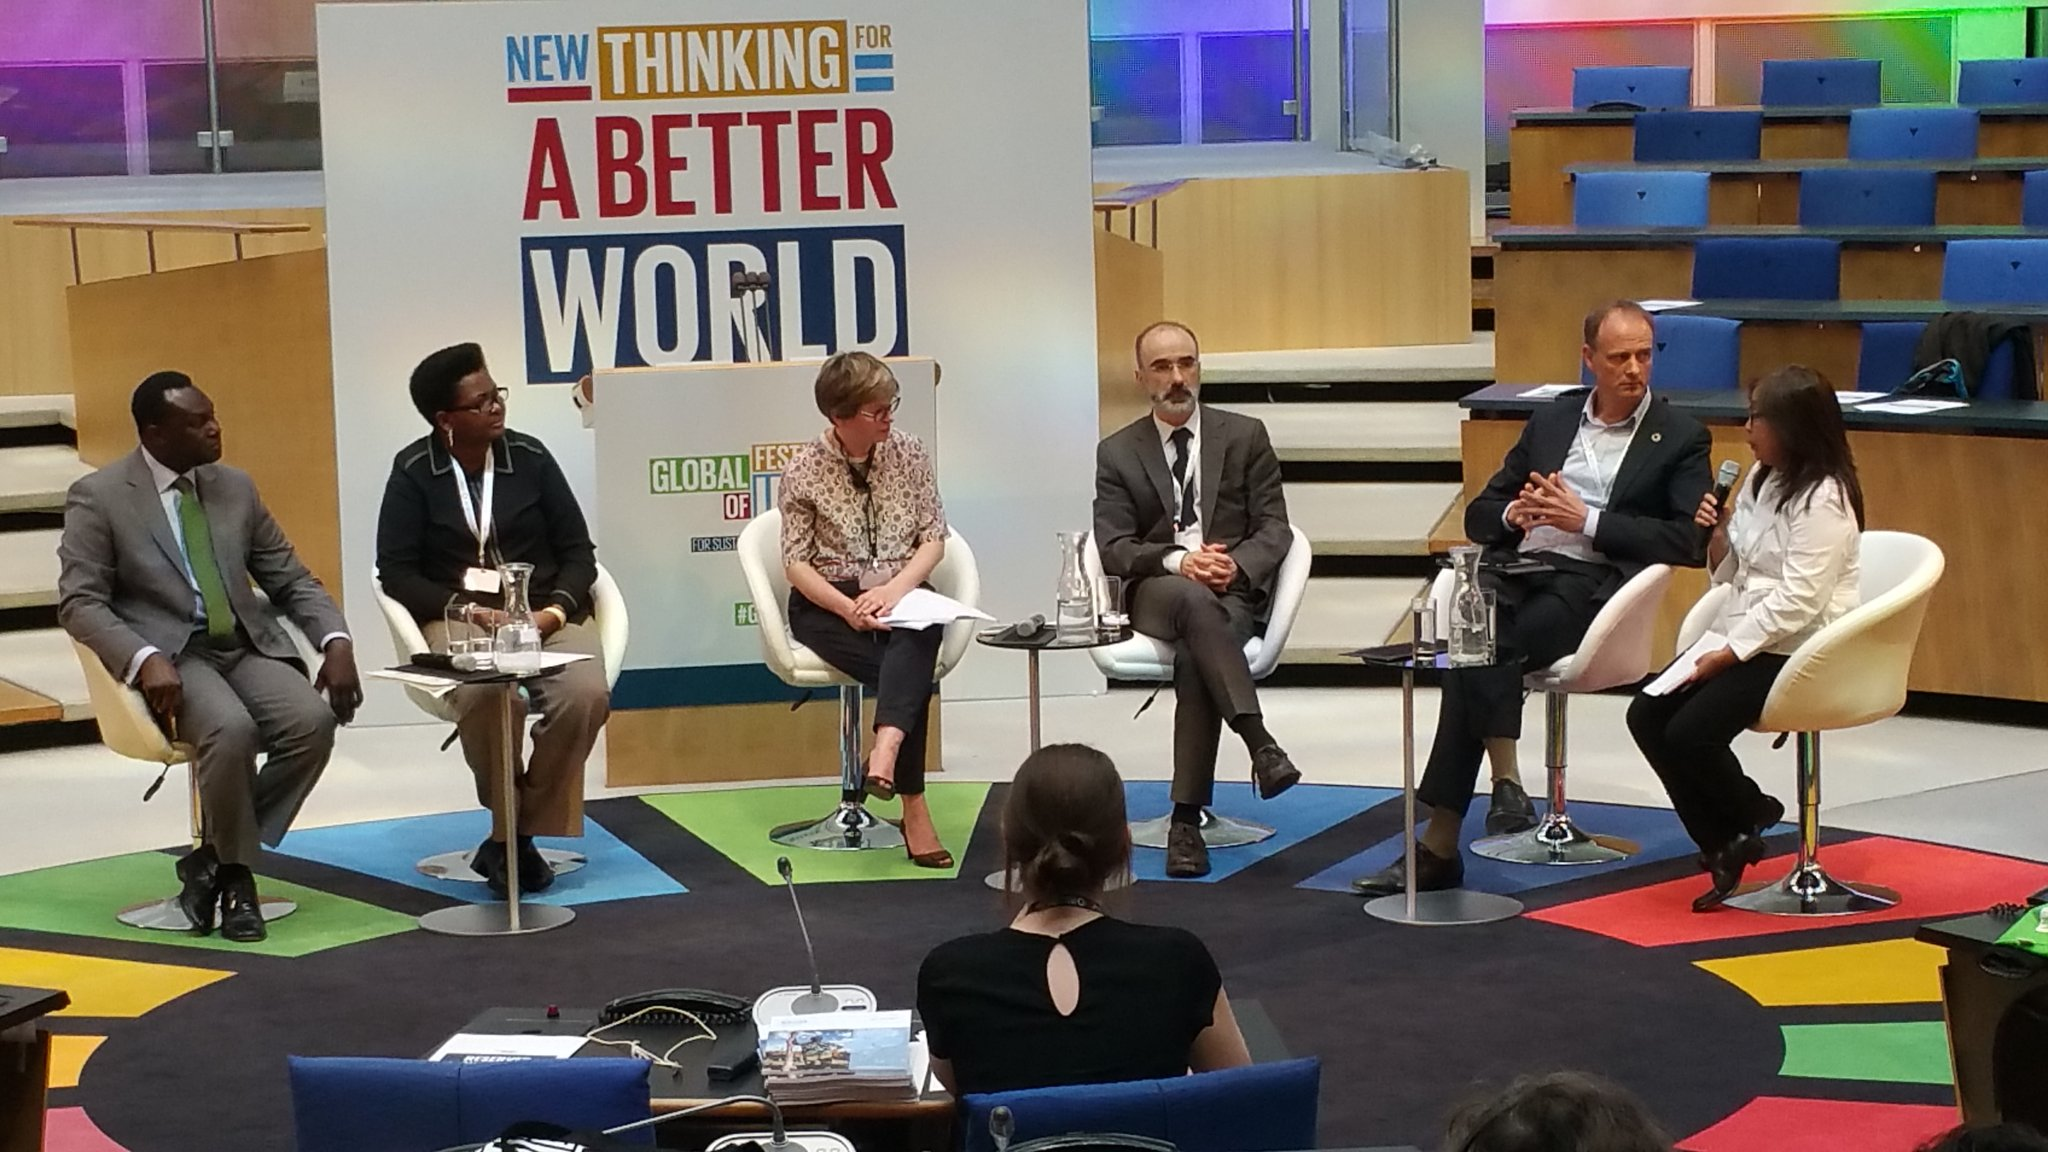 @beckiemalay GCAP Co-Chair speaking about income inequality in the Philippines  and the conditional cash transfer programme #GFI4SD https://t.co/KNB2mOhUoY